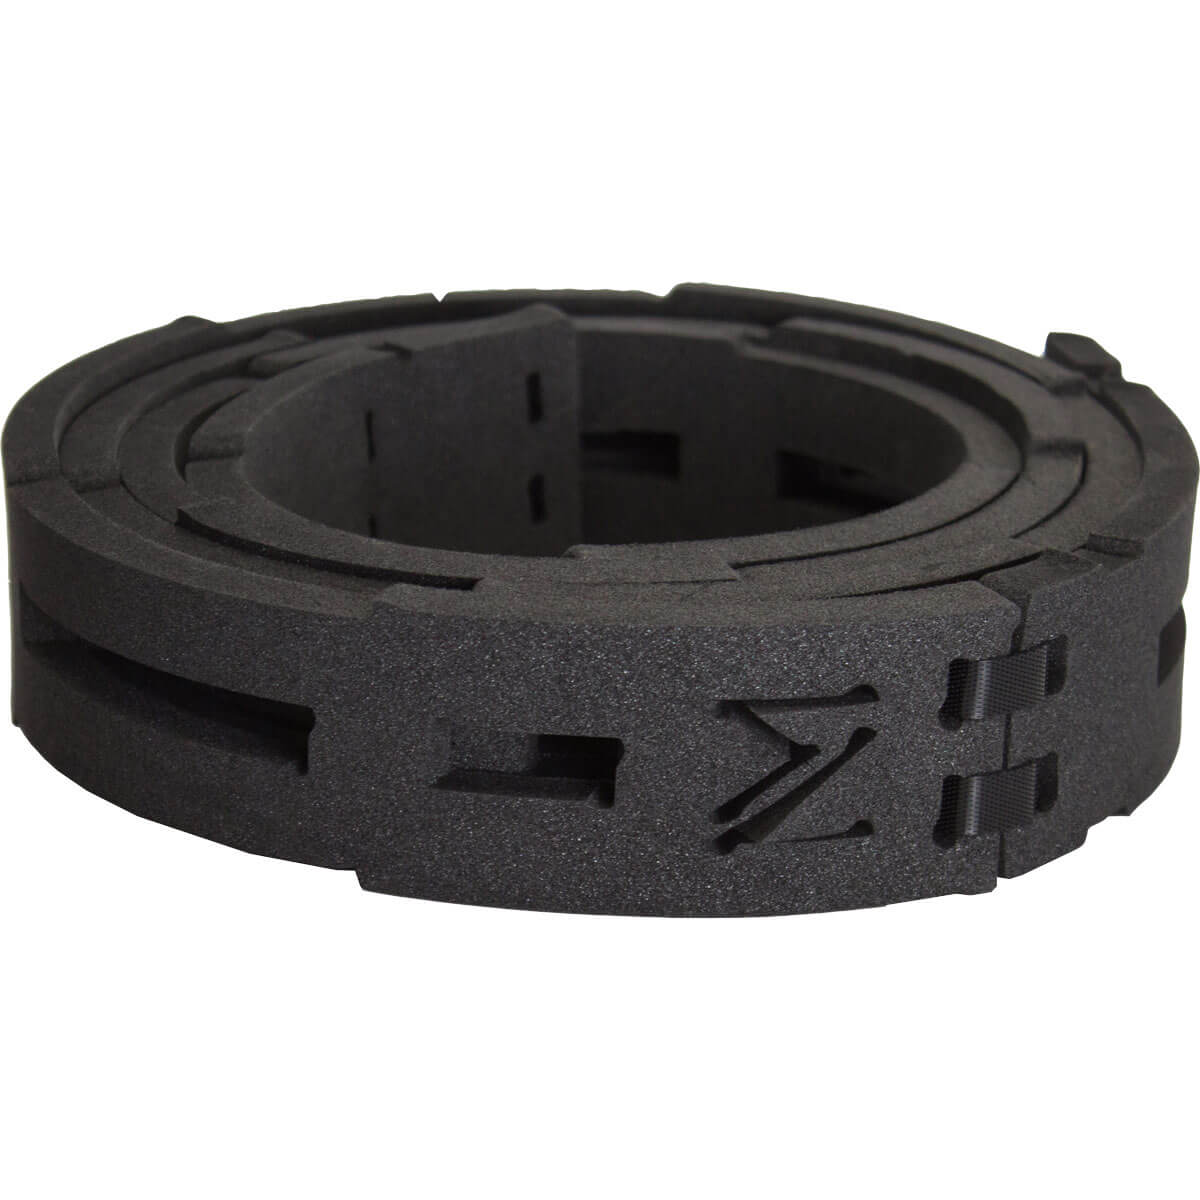 Protetor de Pneu Aro Nomad Defender Tubeless Small 17-25mm